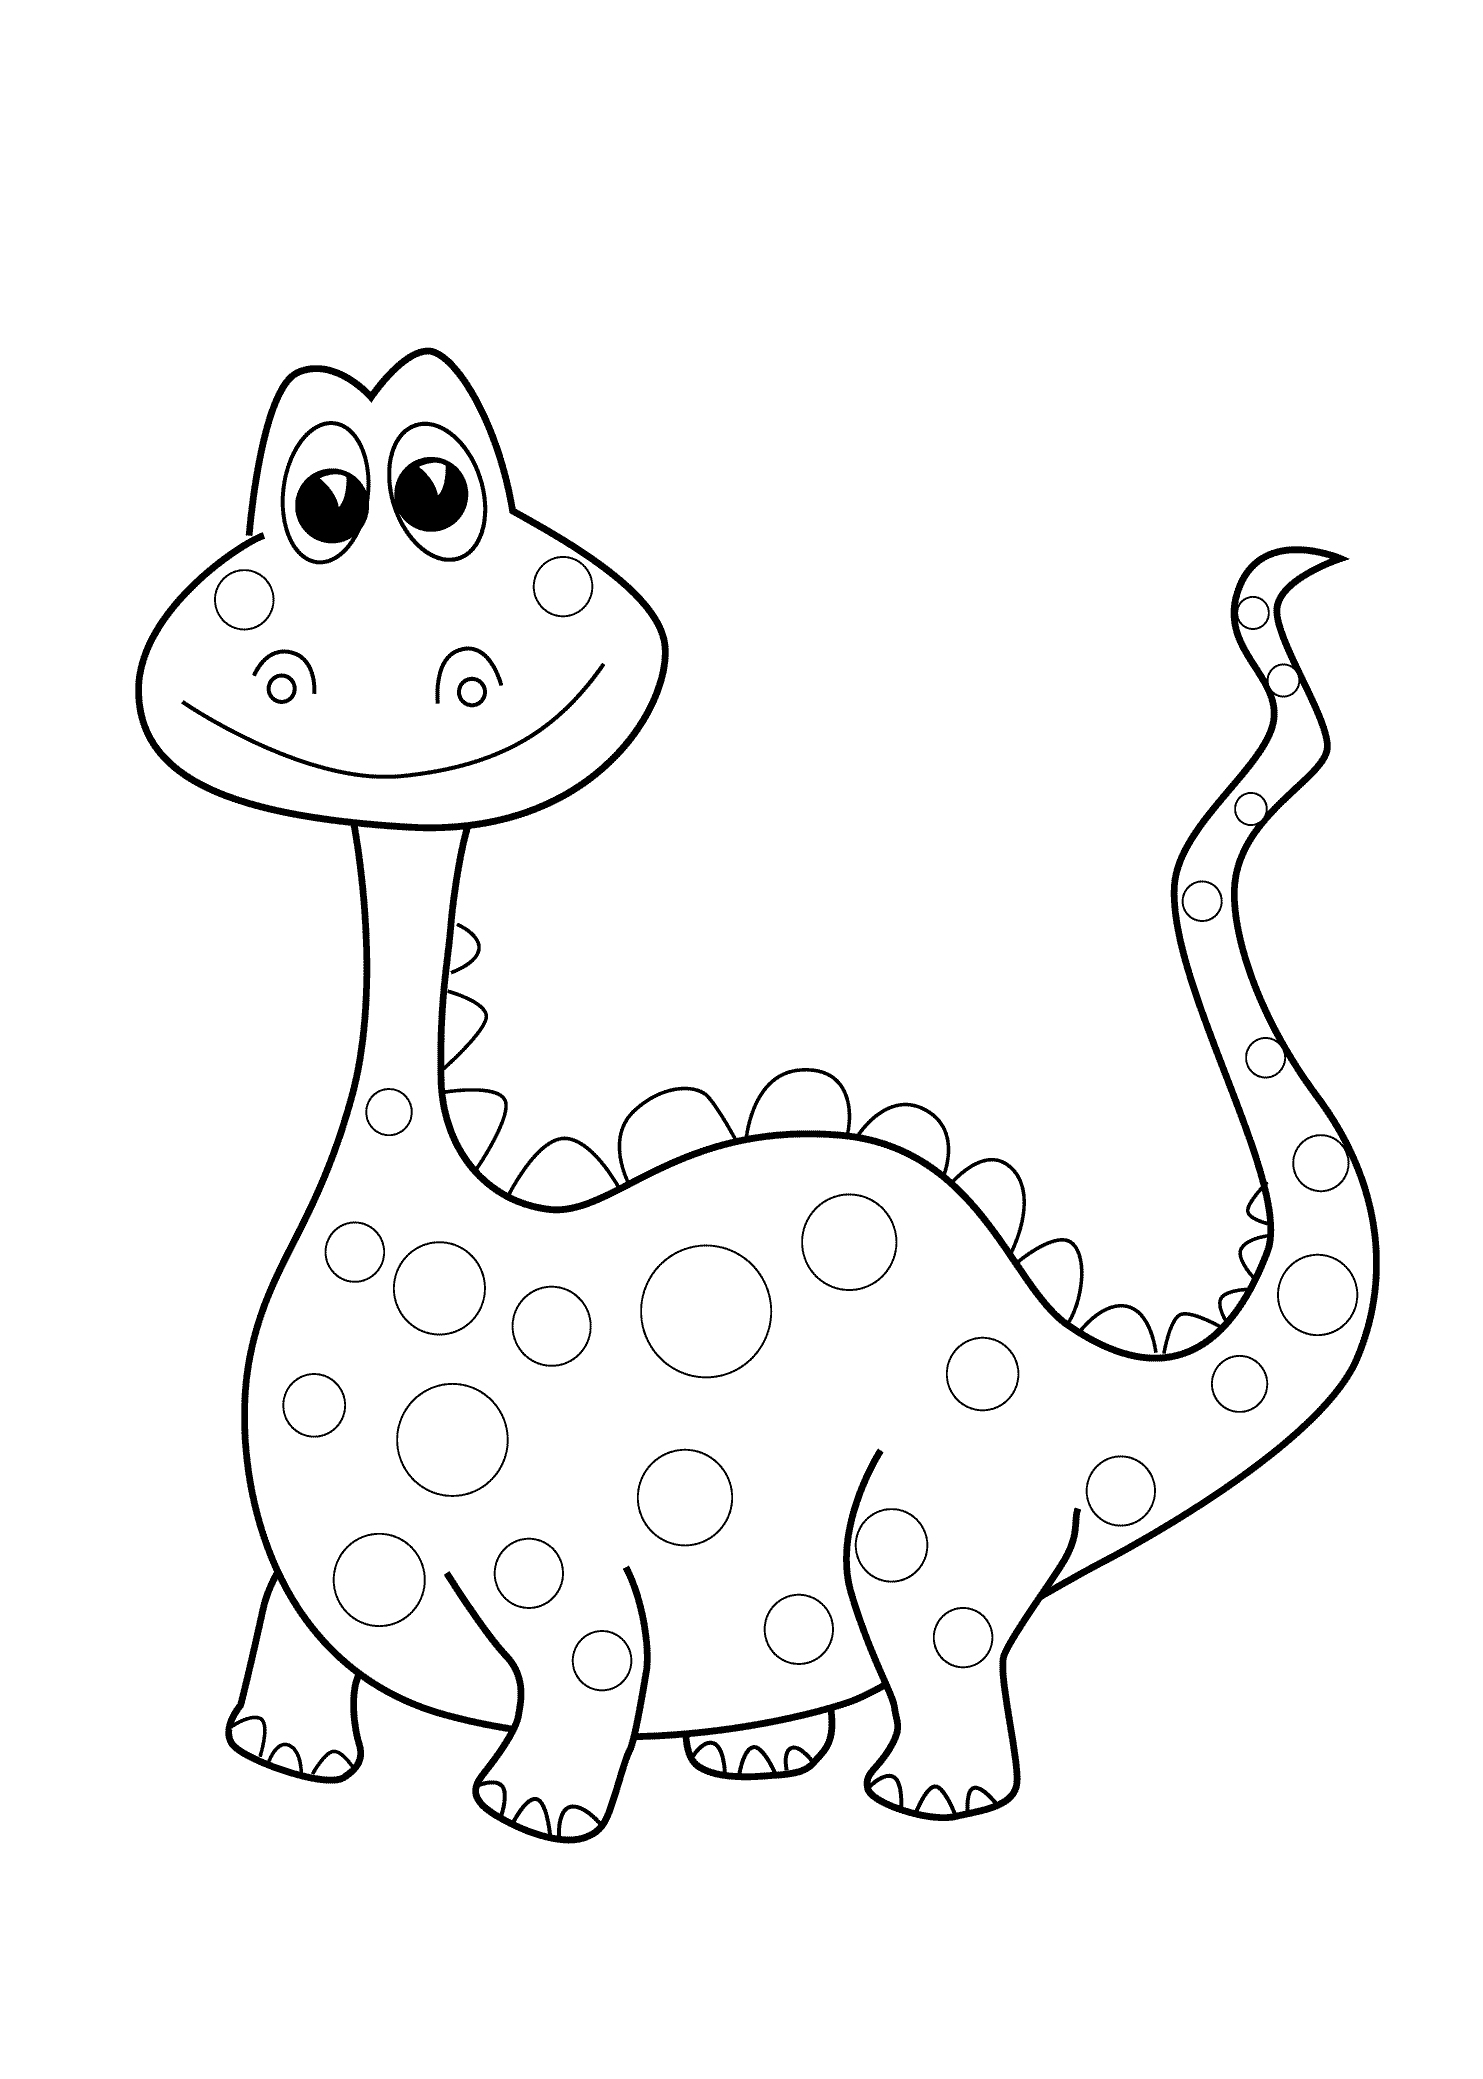 Coloring Pages : Free Printable Coloring Pages For Preschoolers - Free Printable Coloring Pages For Preschoolers